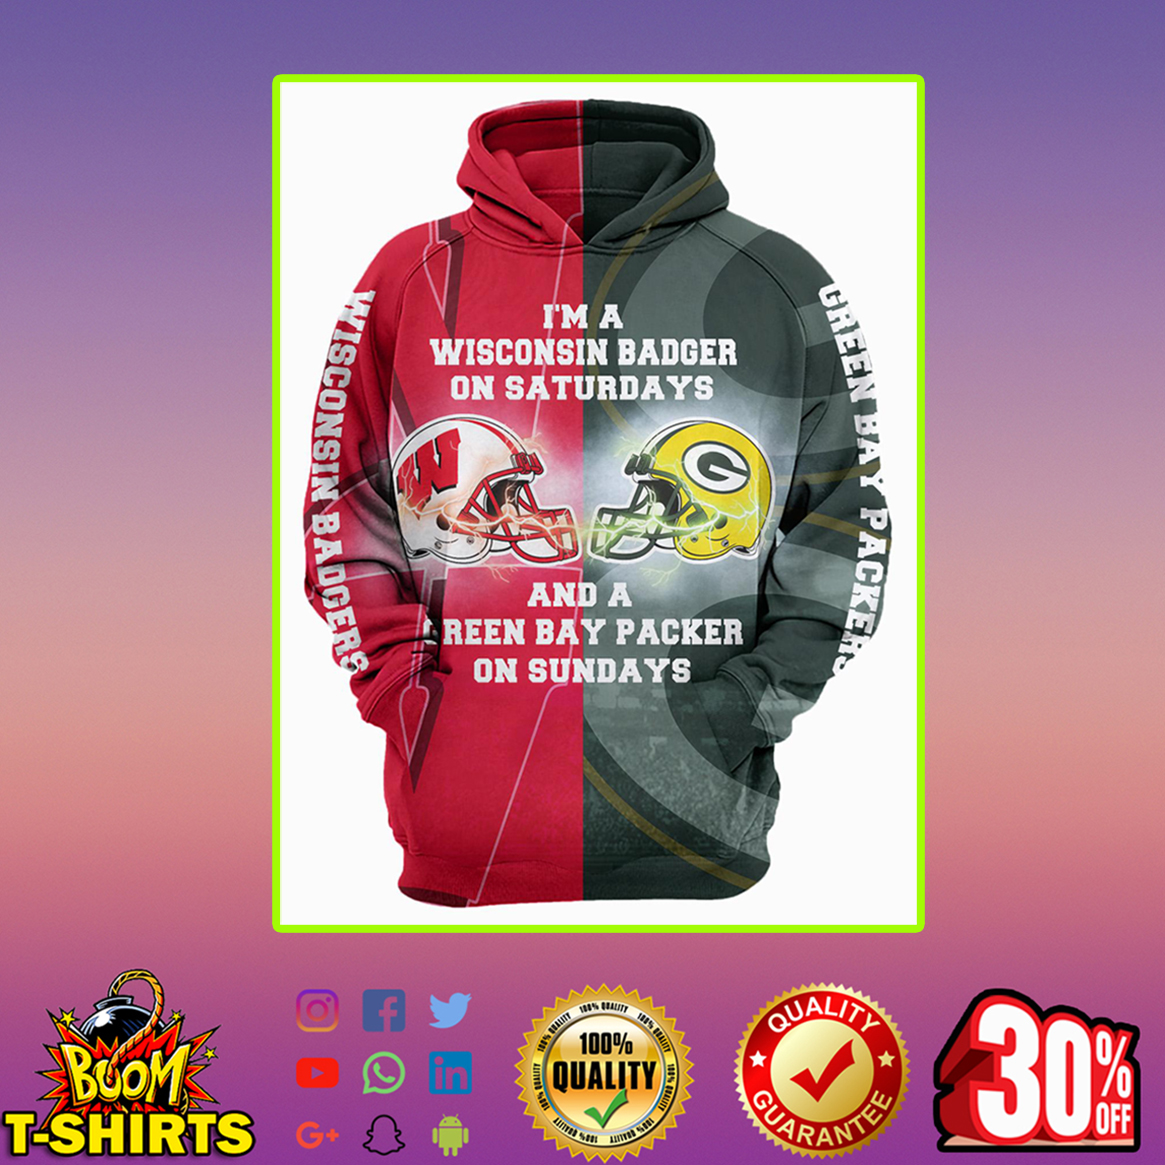 I'm a Wisconsin Badger on Saturdays and a Green Bay Packer on Sundays 3d hoodie - M